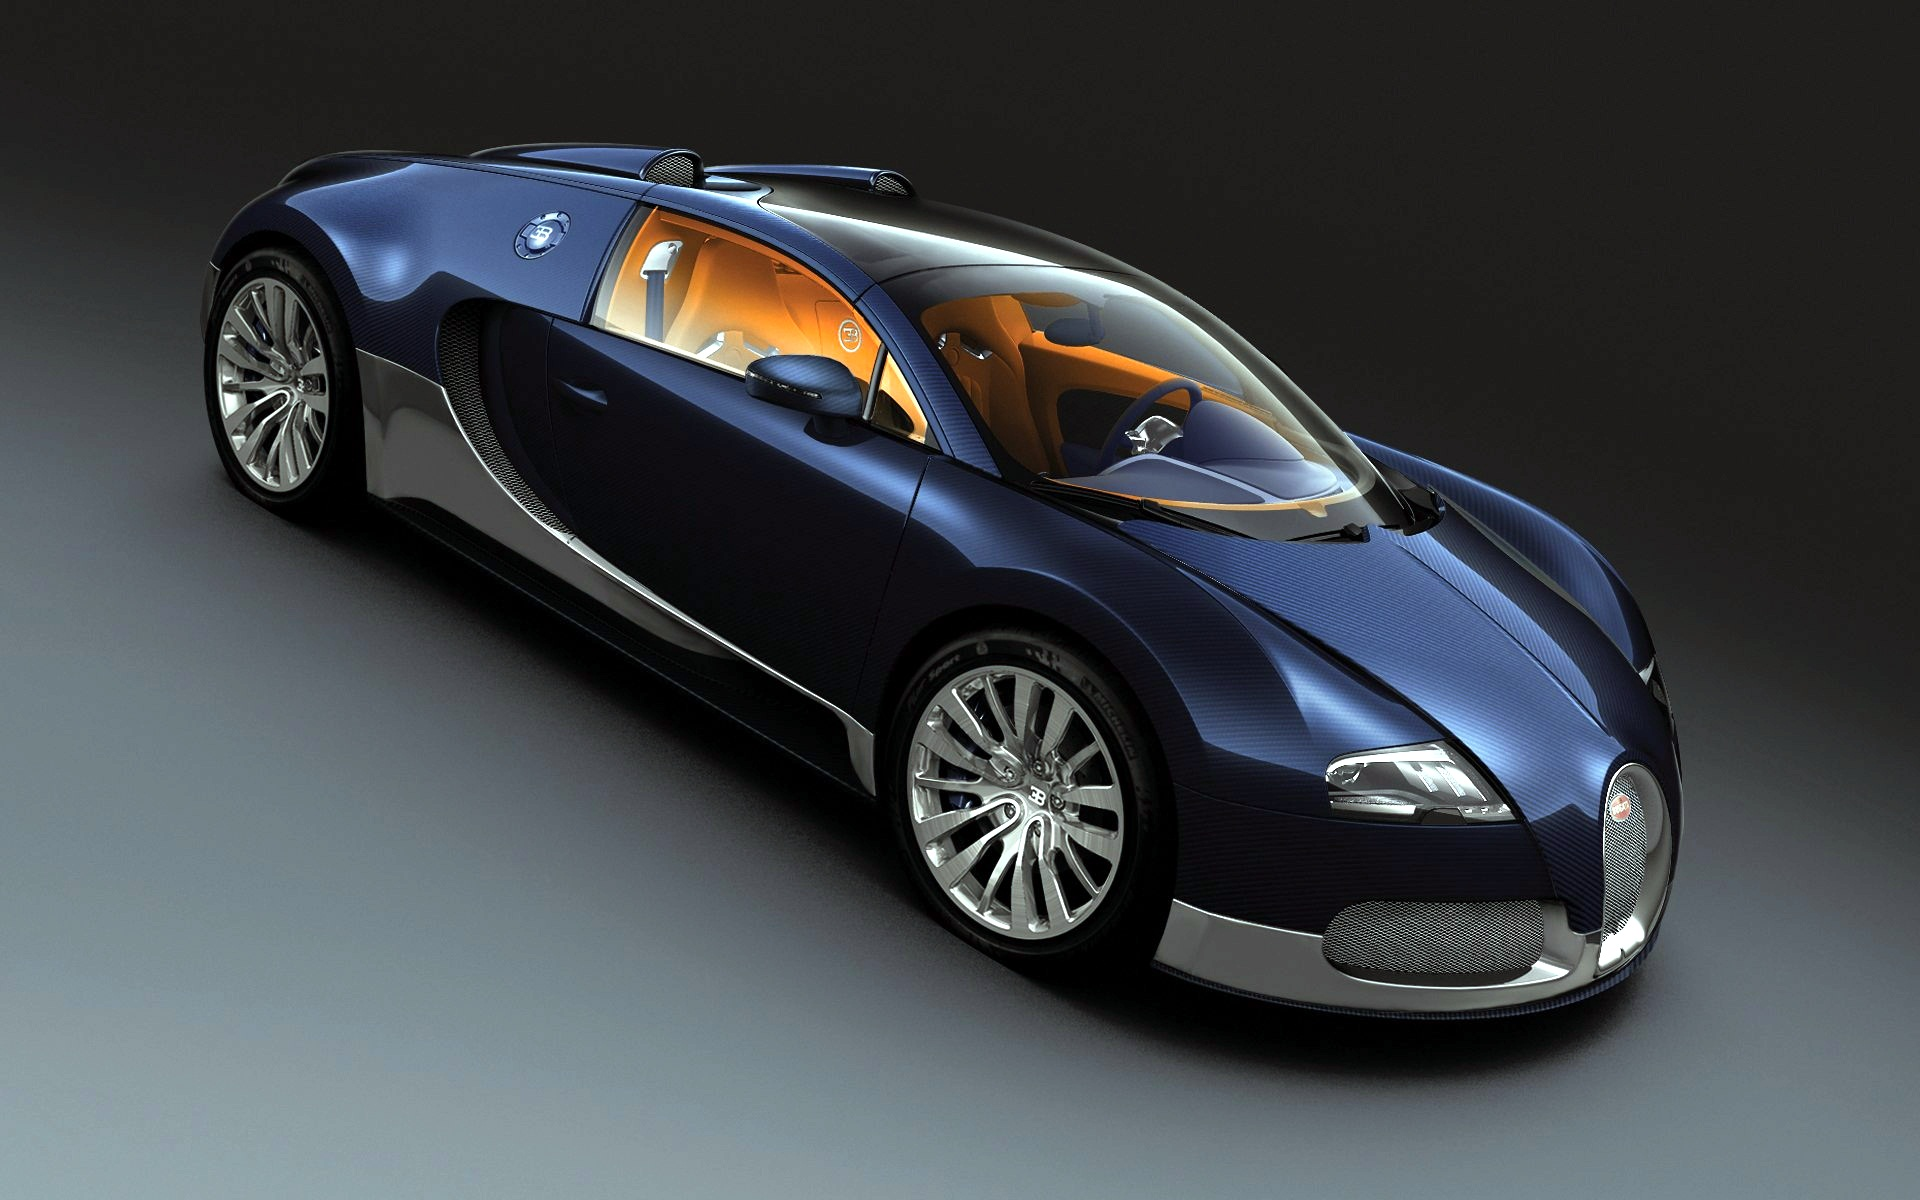 Bugatti Veyron Grand Sport 2011 Wallpaper HD Car Wallpapers 1920x1200